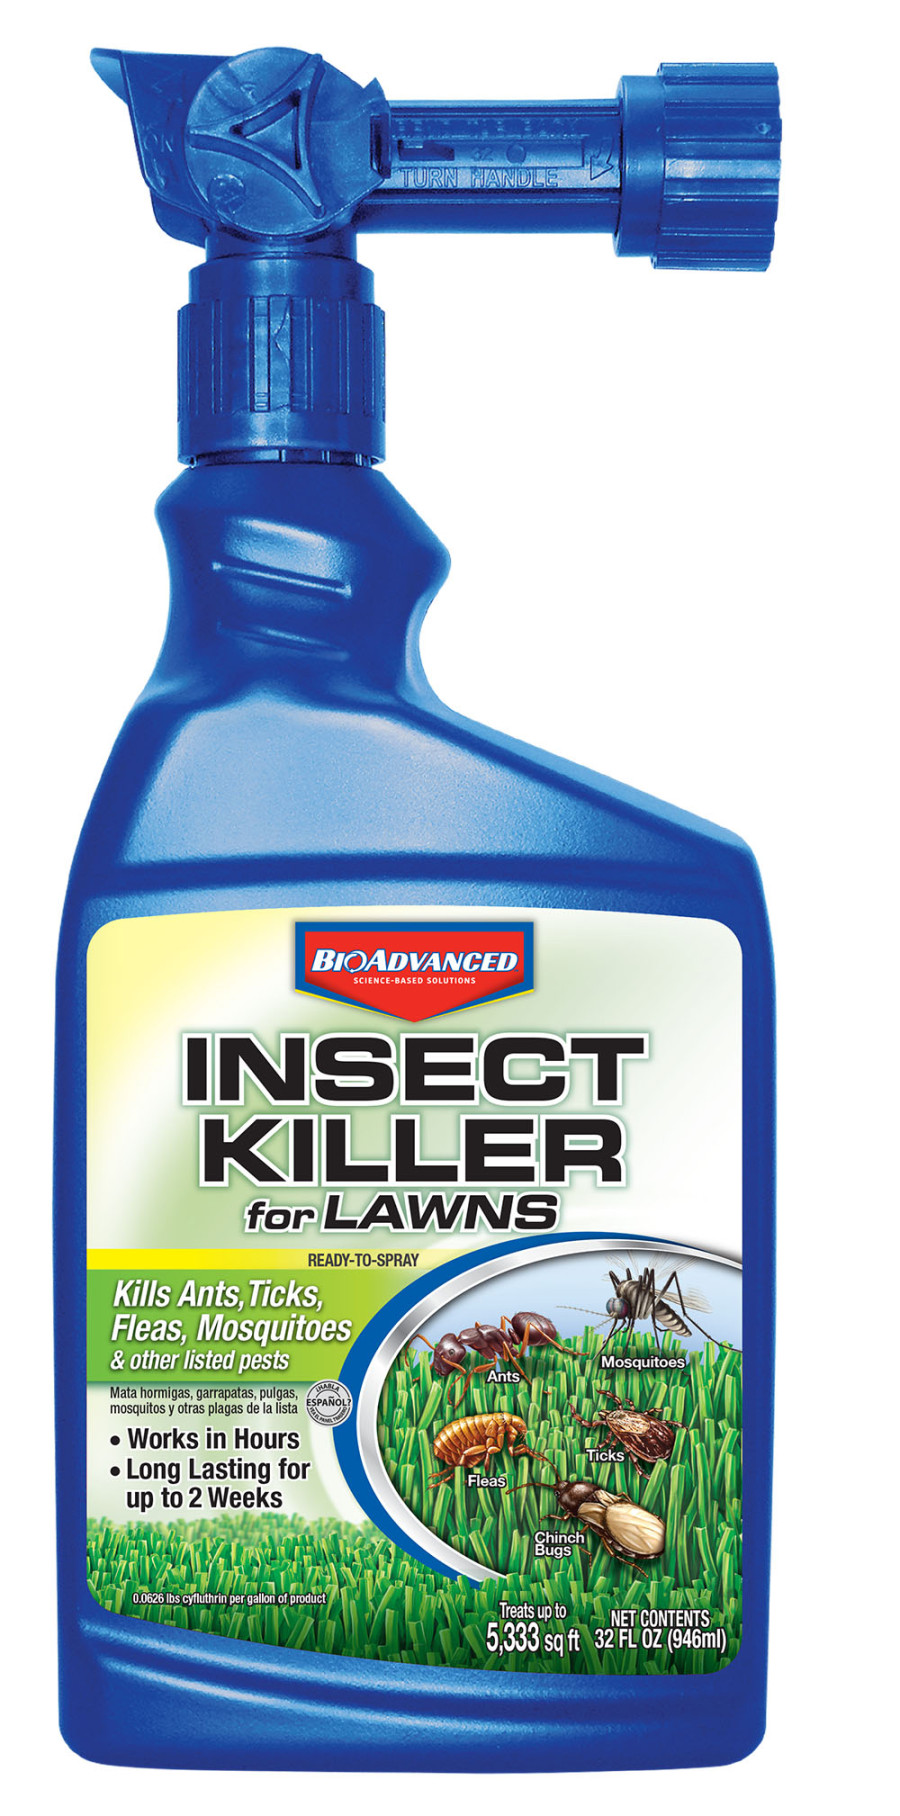 BioAdvanced Insect Killer for Lawns Ready to Spray 4ea/32 oz